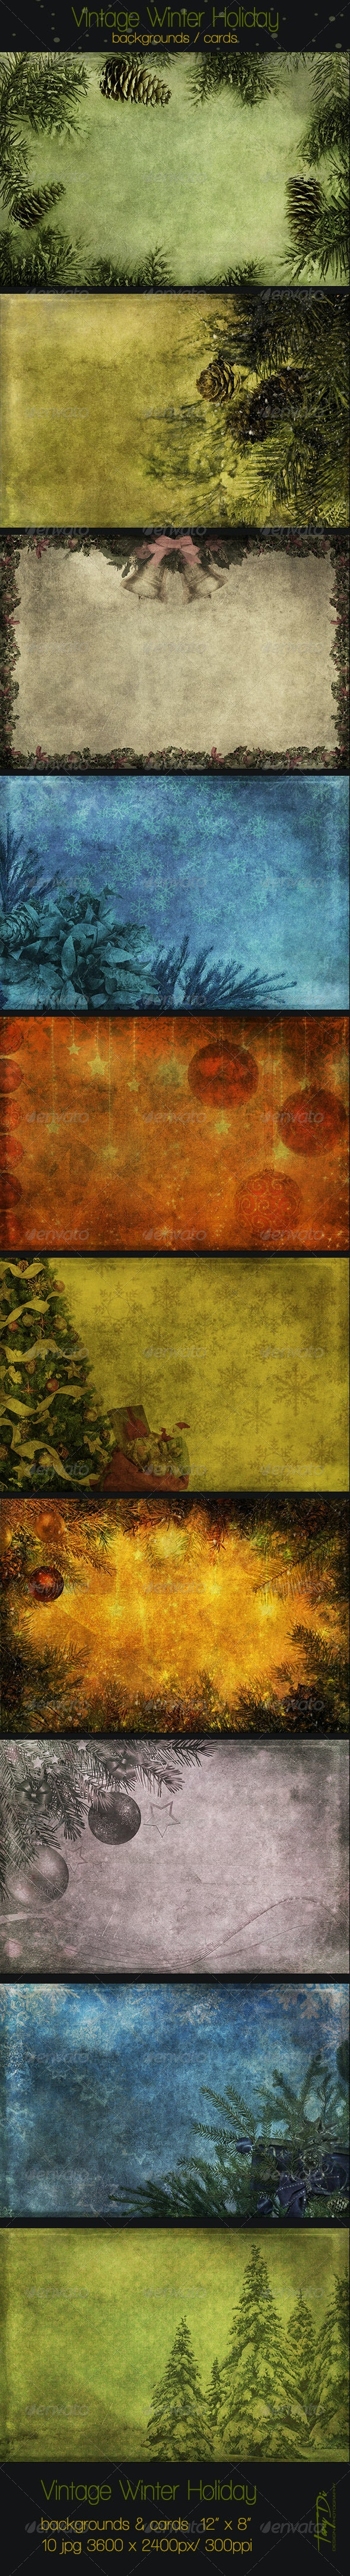 Vintage Winter Holiday Backgrounds - Miscellaneous Backgrounds